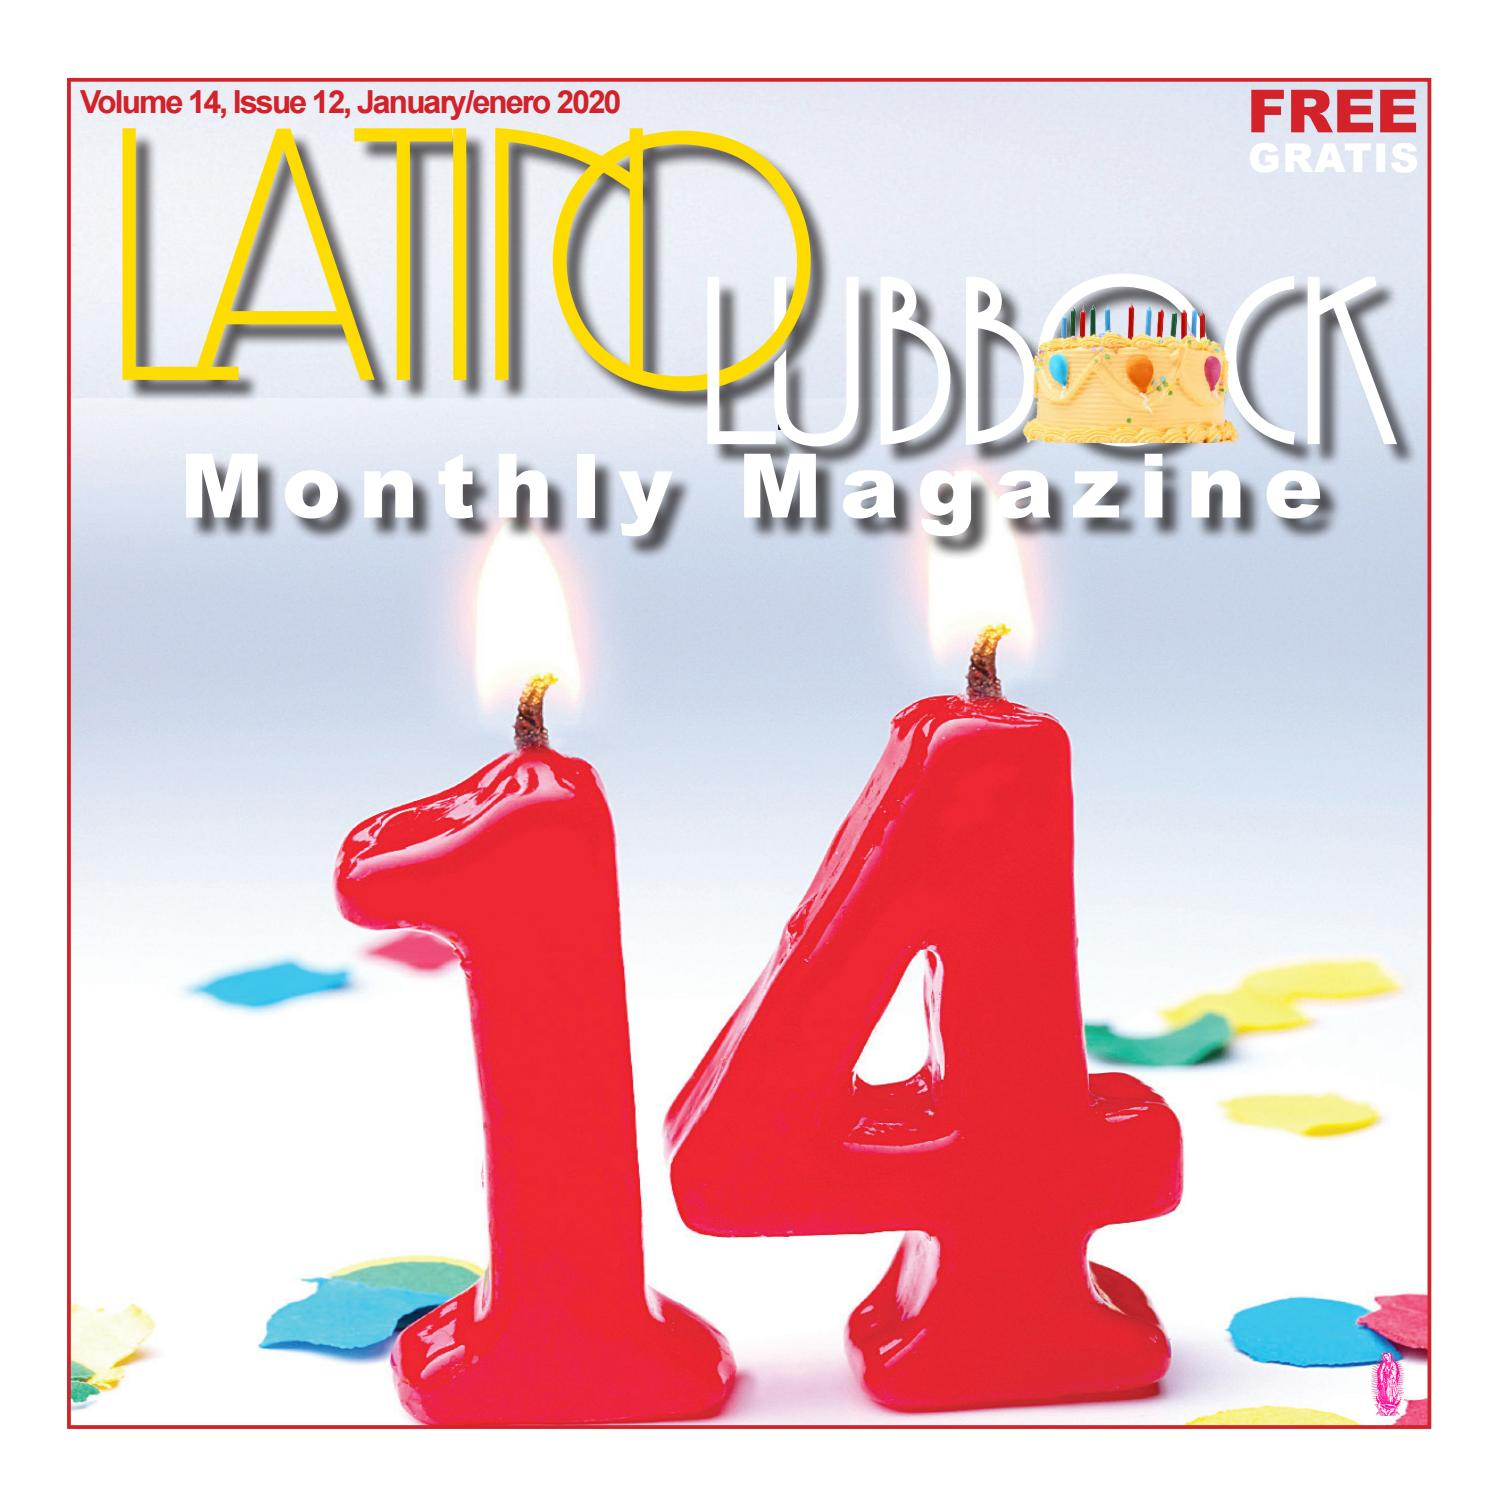 Joe Carrillo Press Conference 2020 Halloween Party Latino Lubbock Magazine, Volume 14, Issue 1   January 2020 by